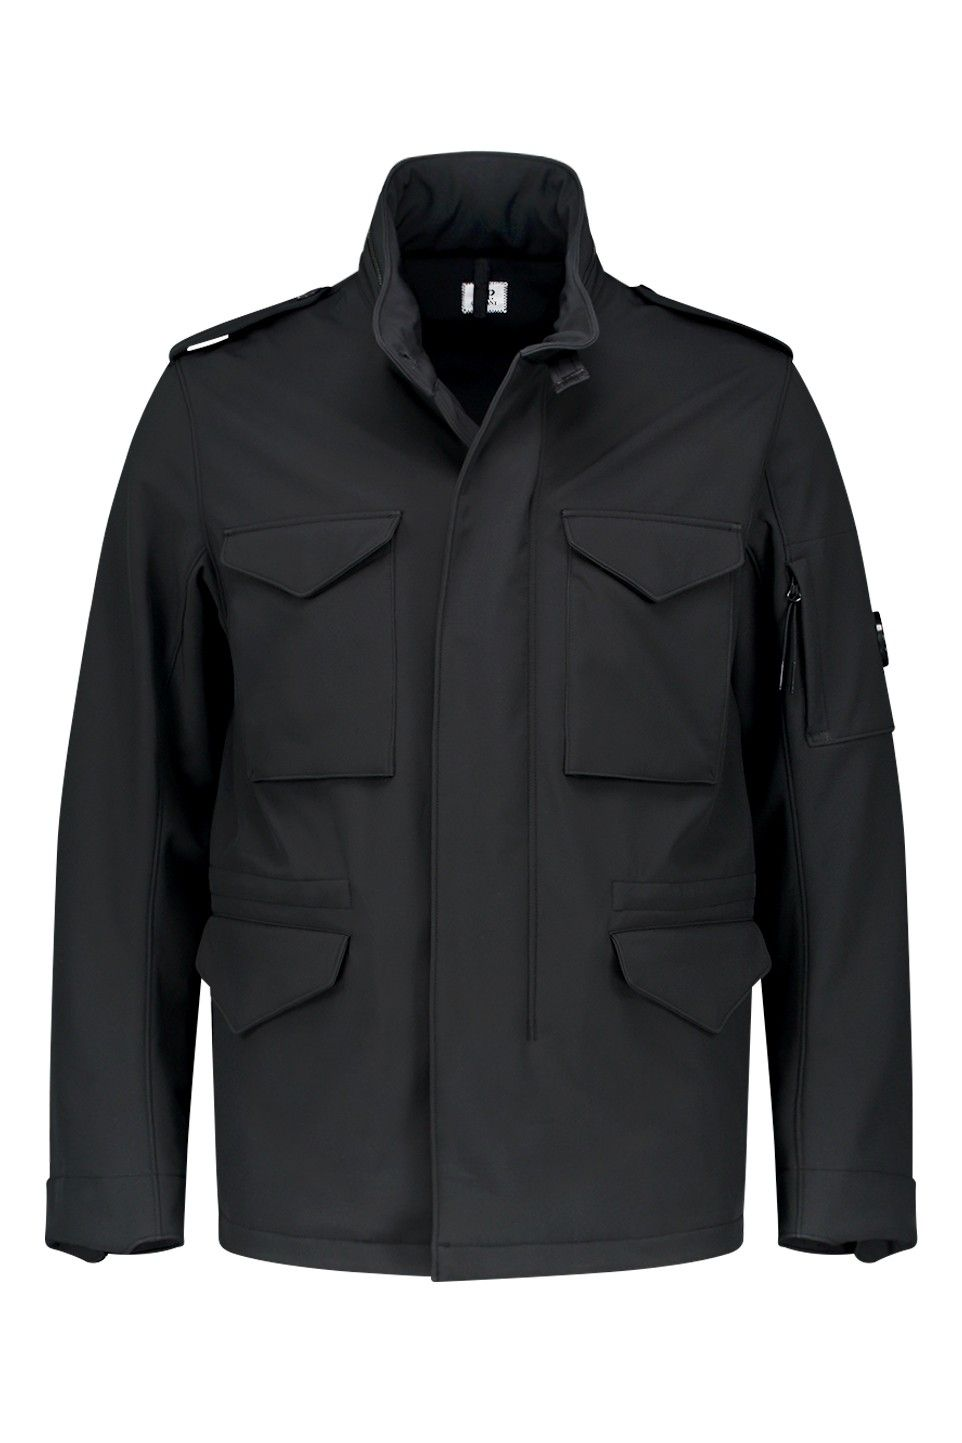 06CMSH071A overshirt jacket in navy